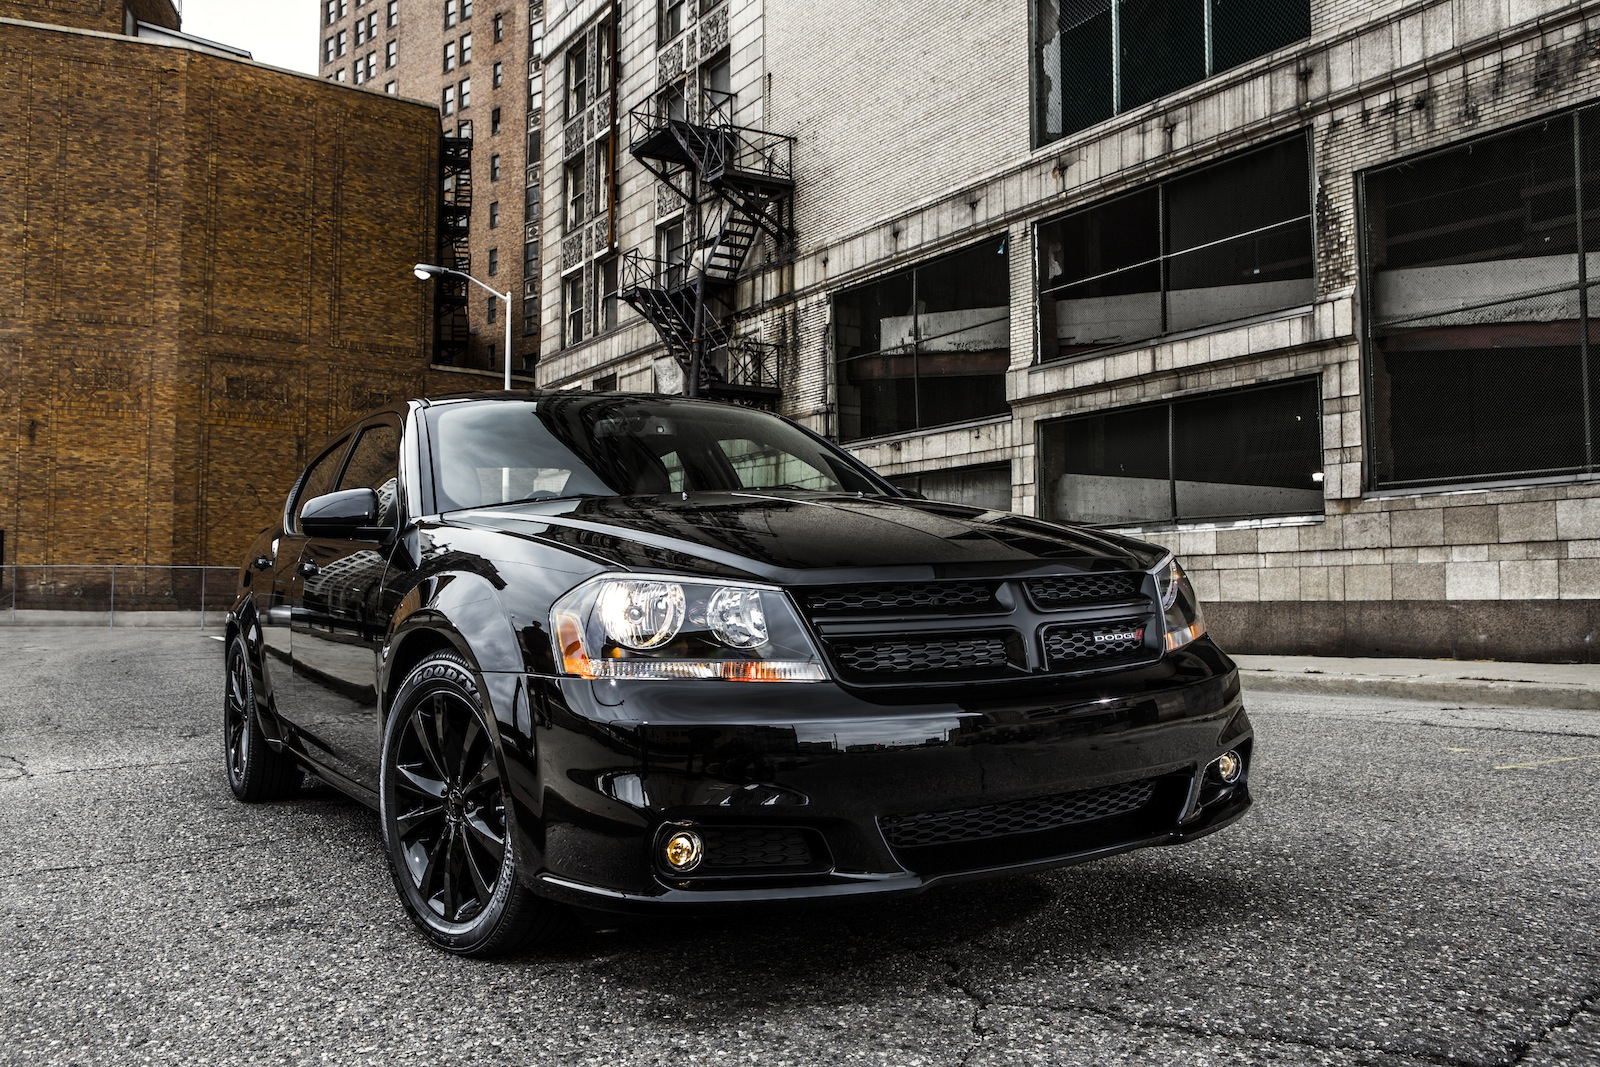 2013 Dodge Avenger Review Ratings Specs Prices And Photos The Car Connection